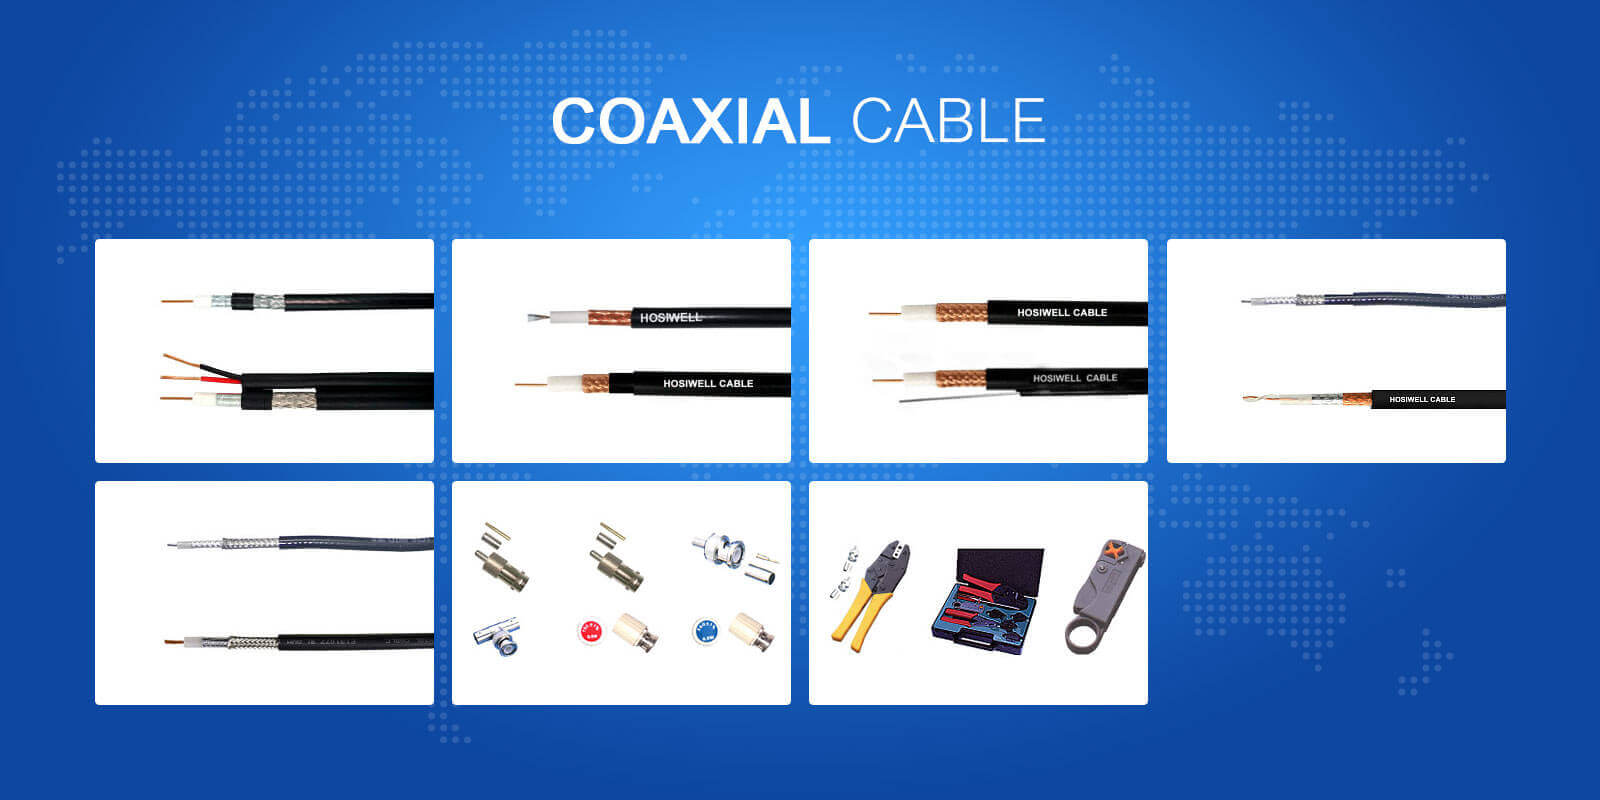 Kp Trading Group Co Ltd Is Manufacturing Electric Wires And Electrical Wiring Accessories Manufacturers Model 5